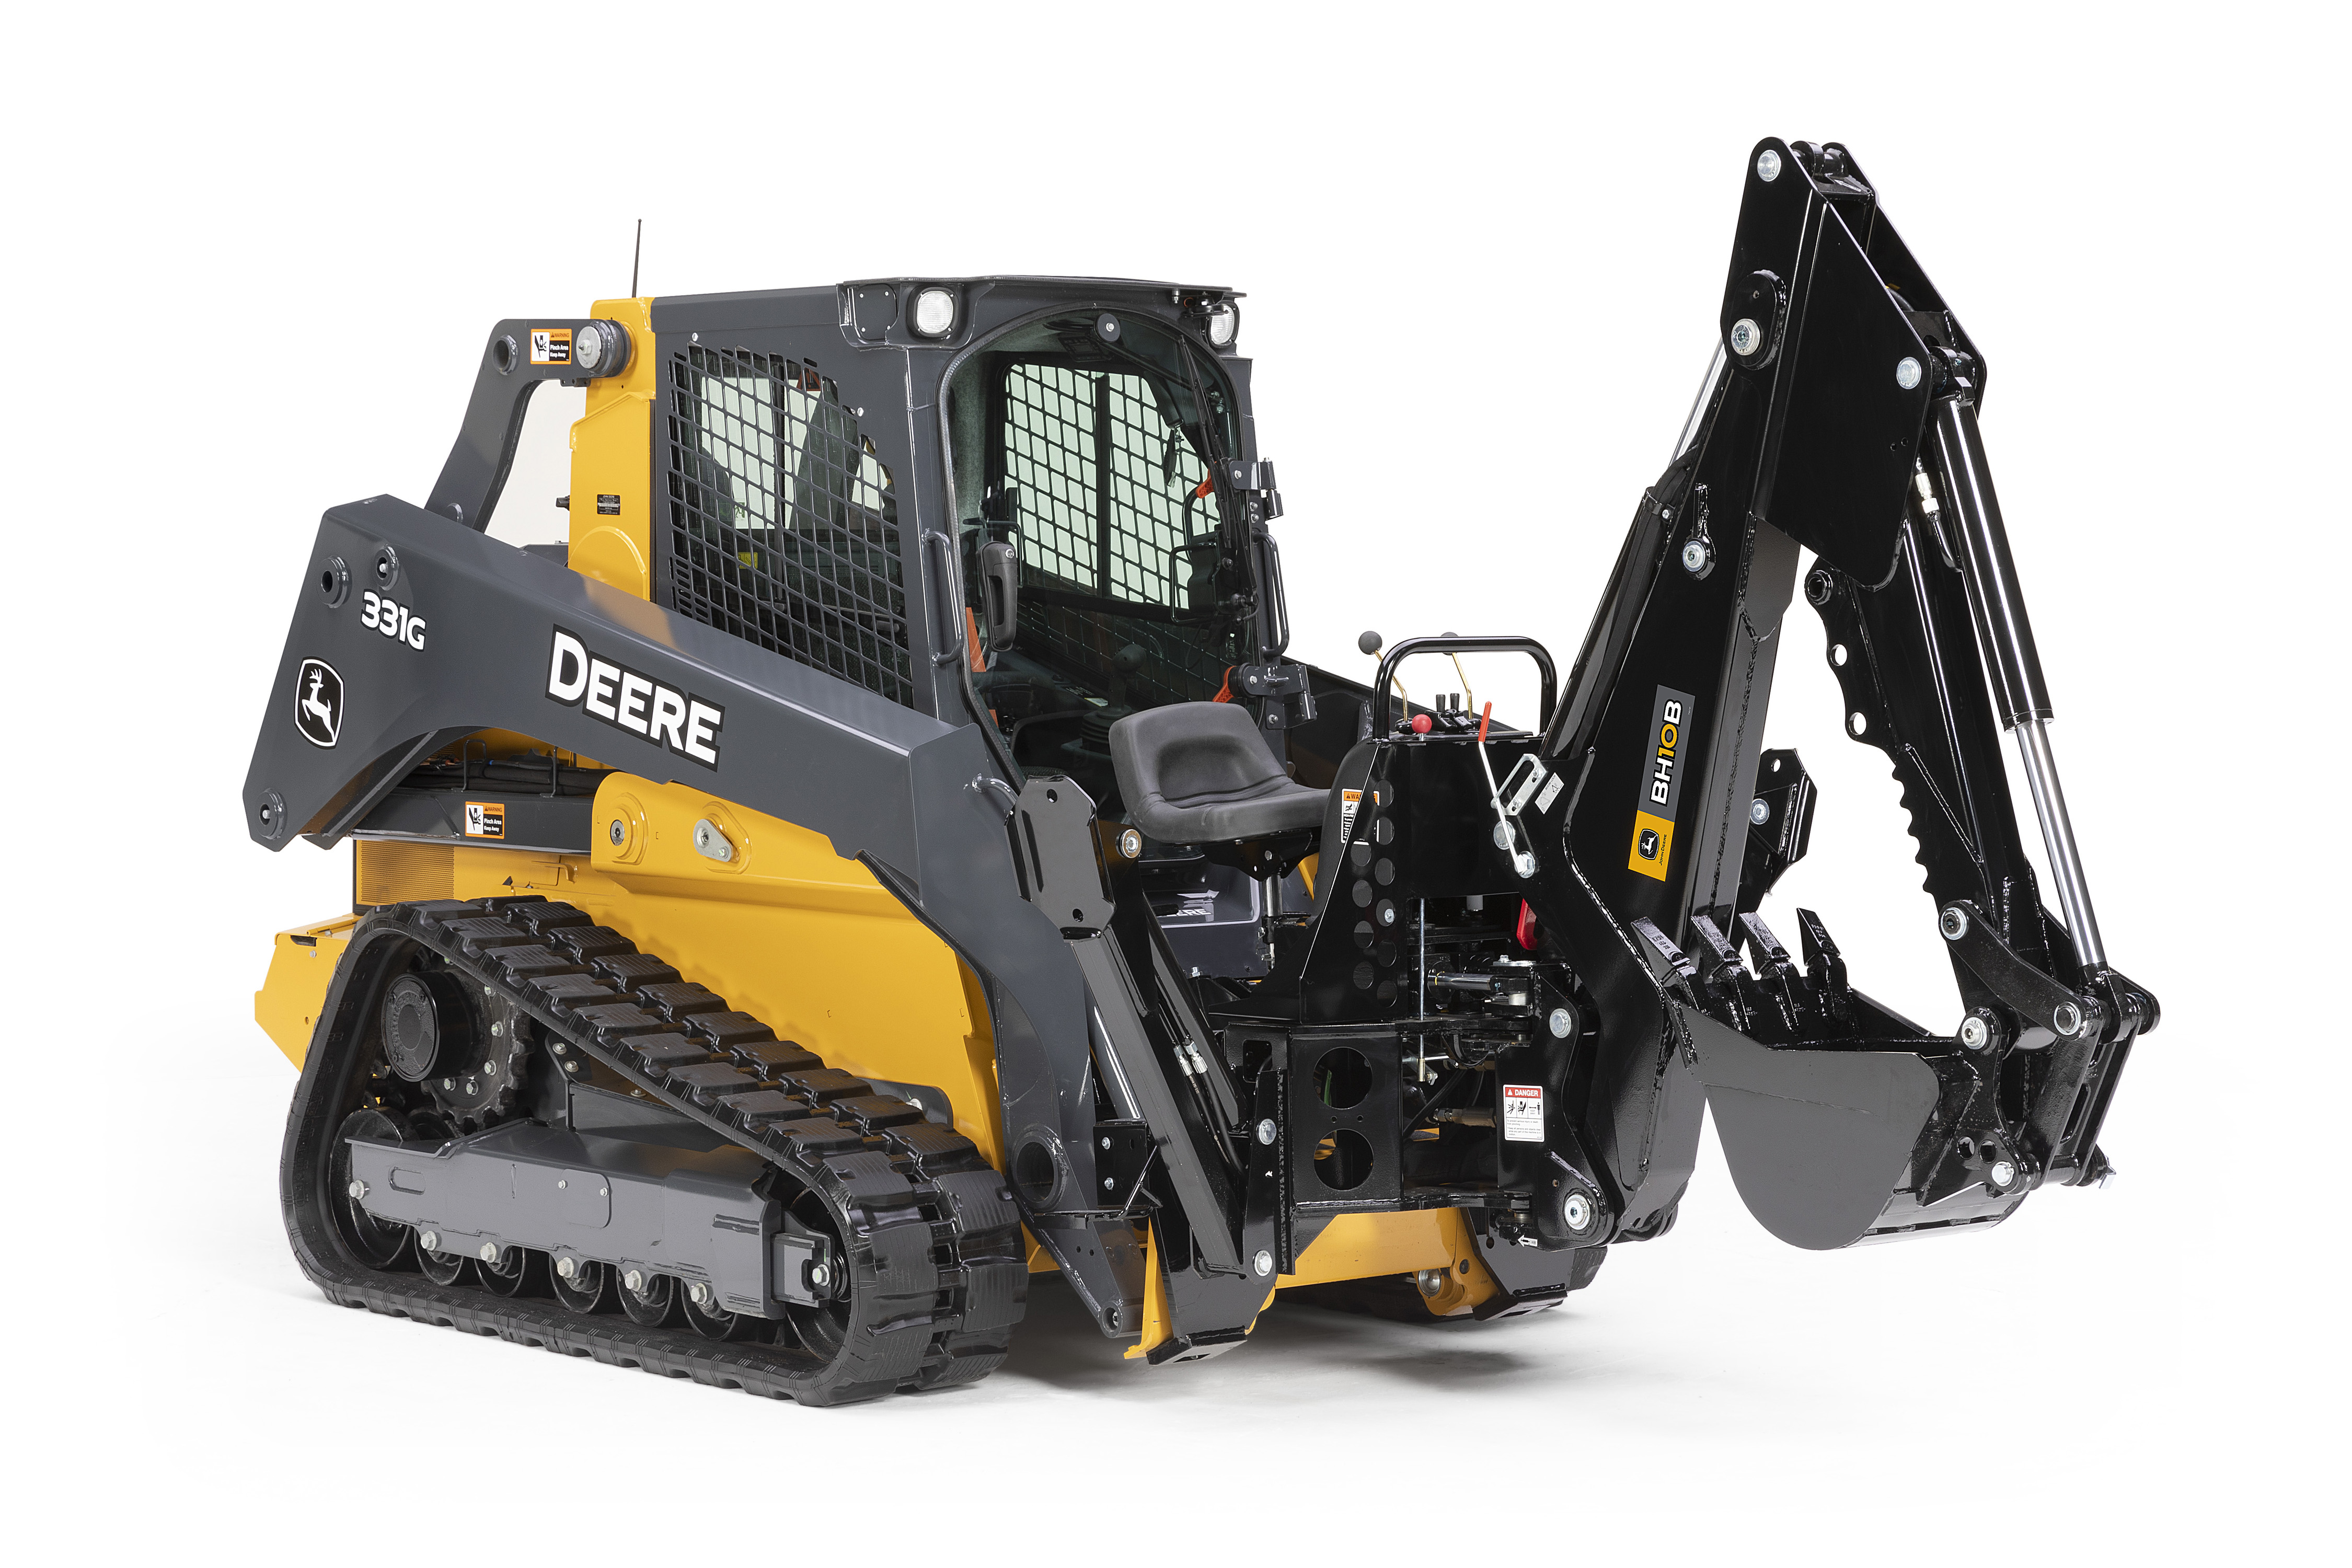 John Deere Backhoe Attachment >> John Deer Introduces Three New Backhoe Attachments